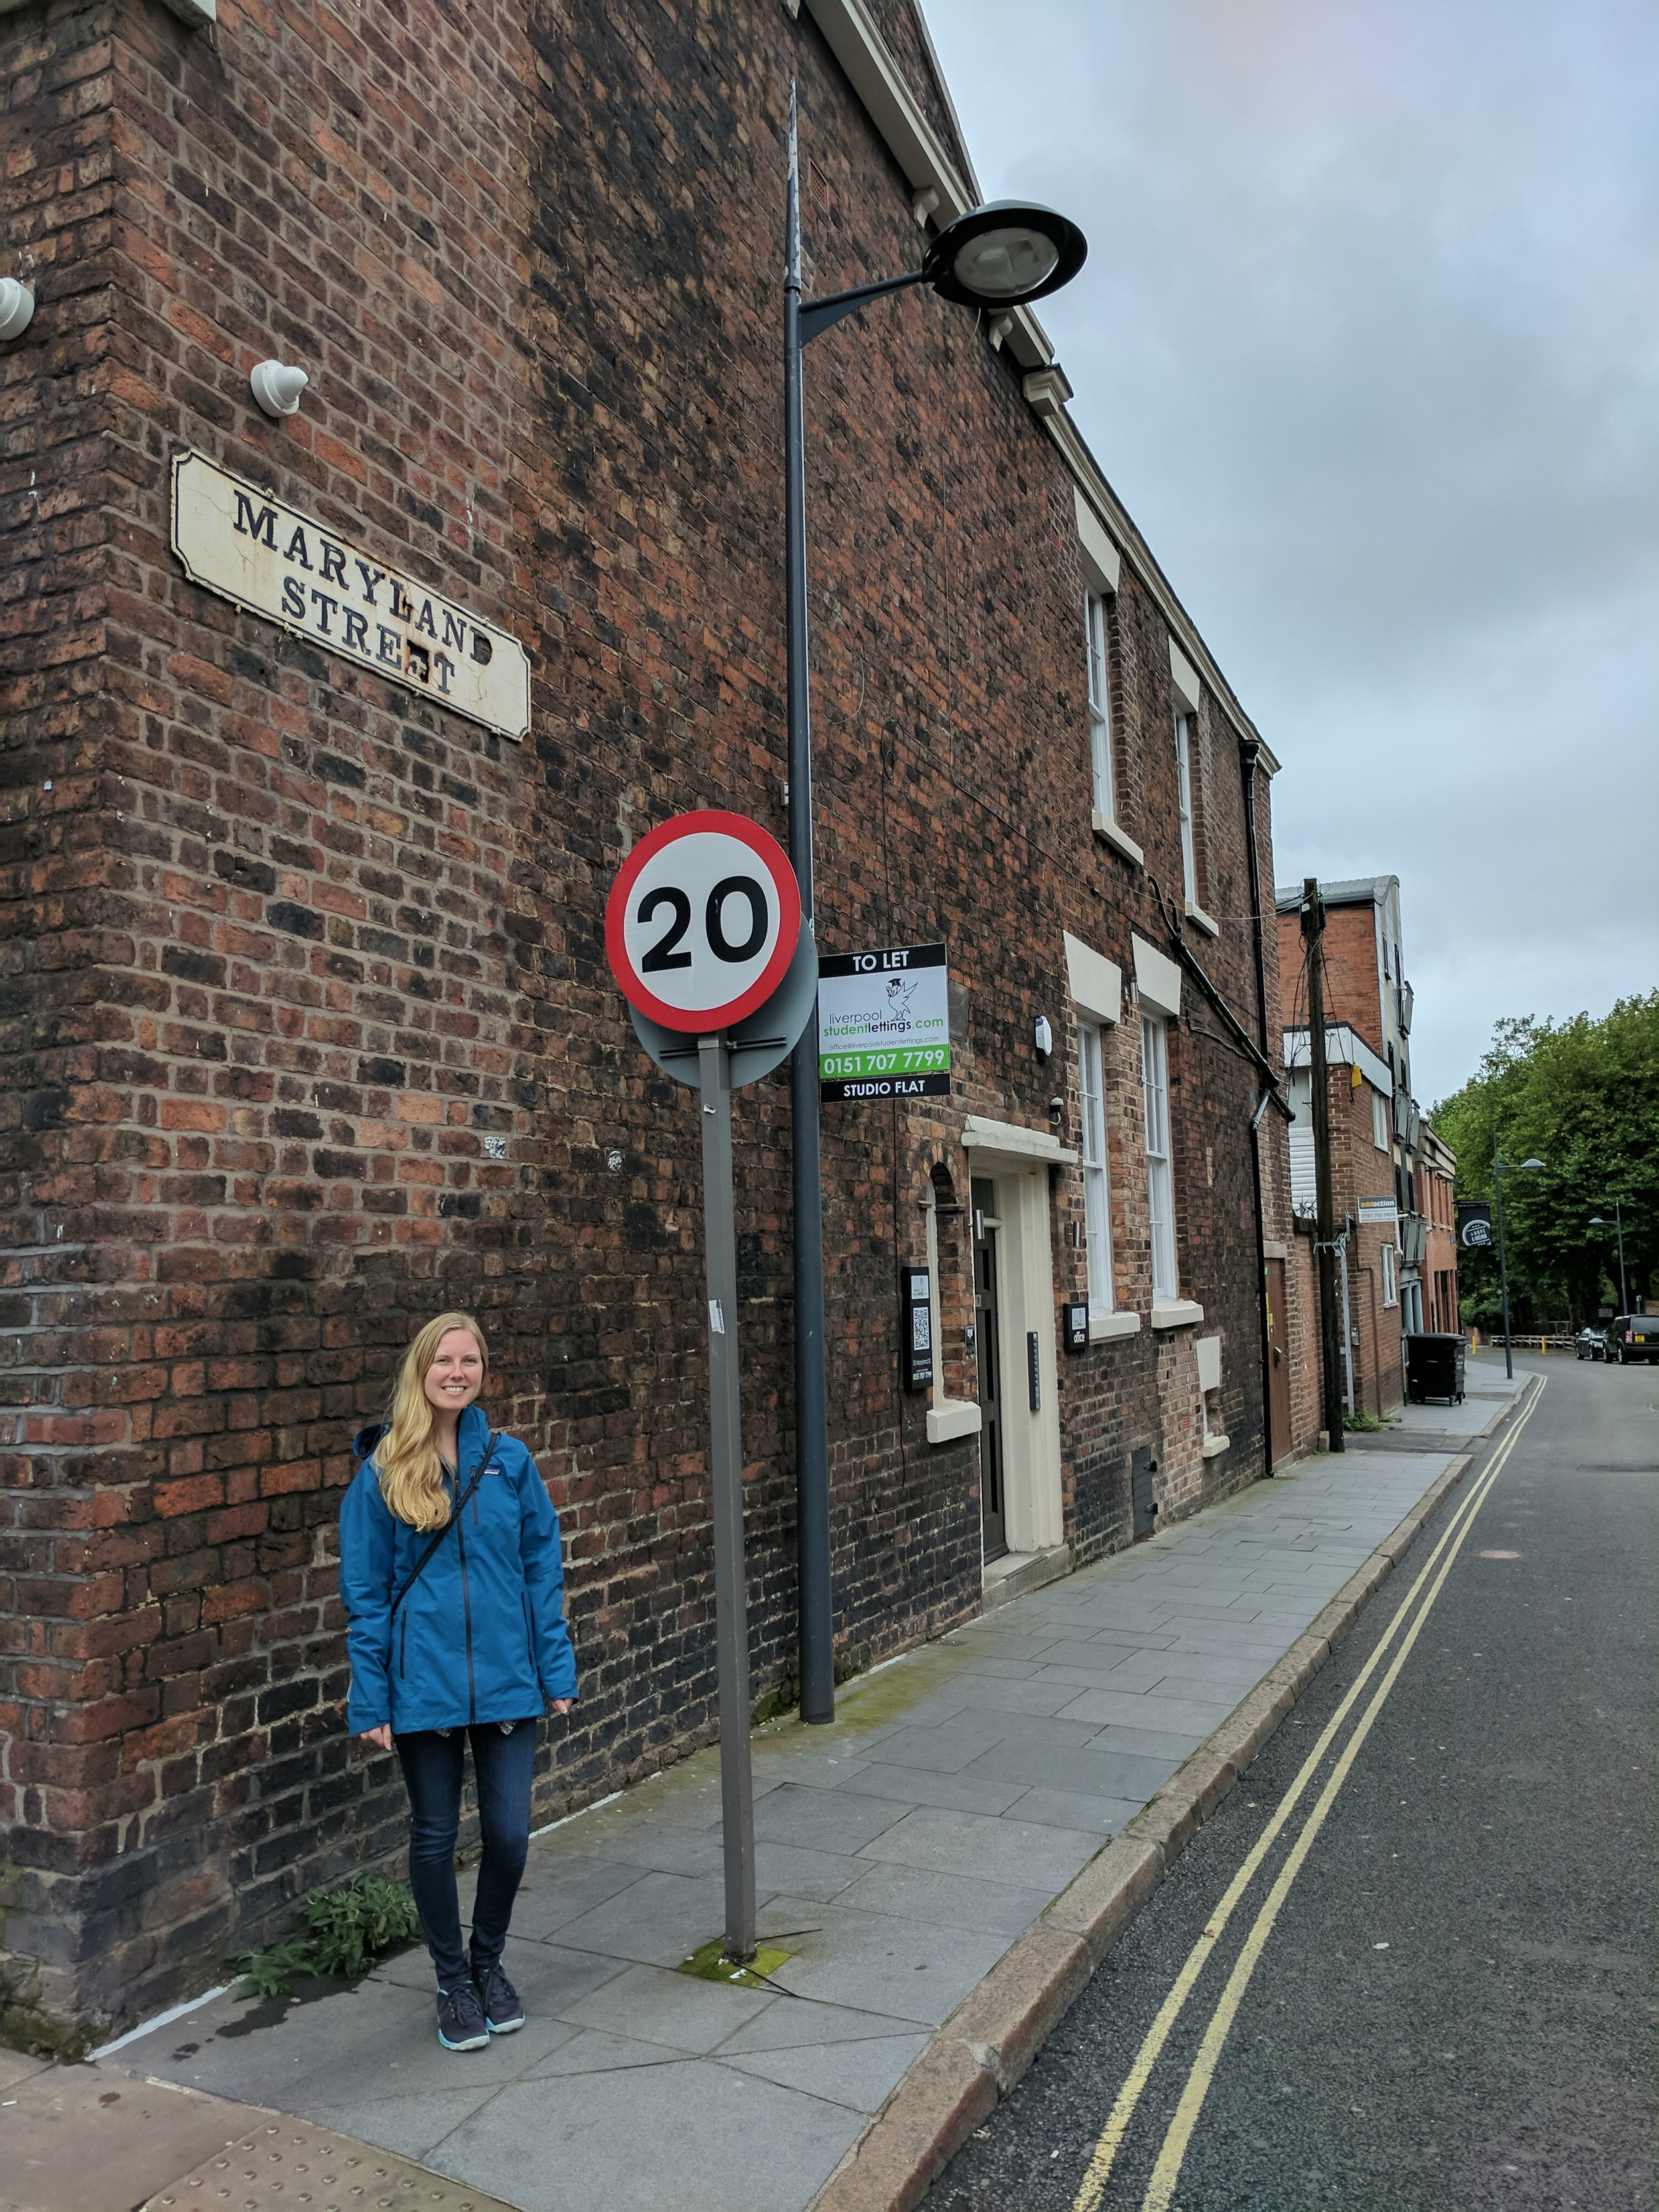 Maryland Street in Liverpool